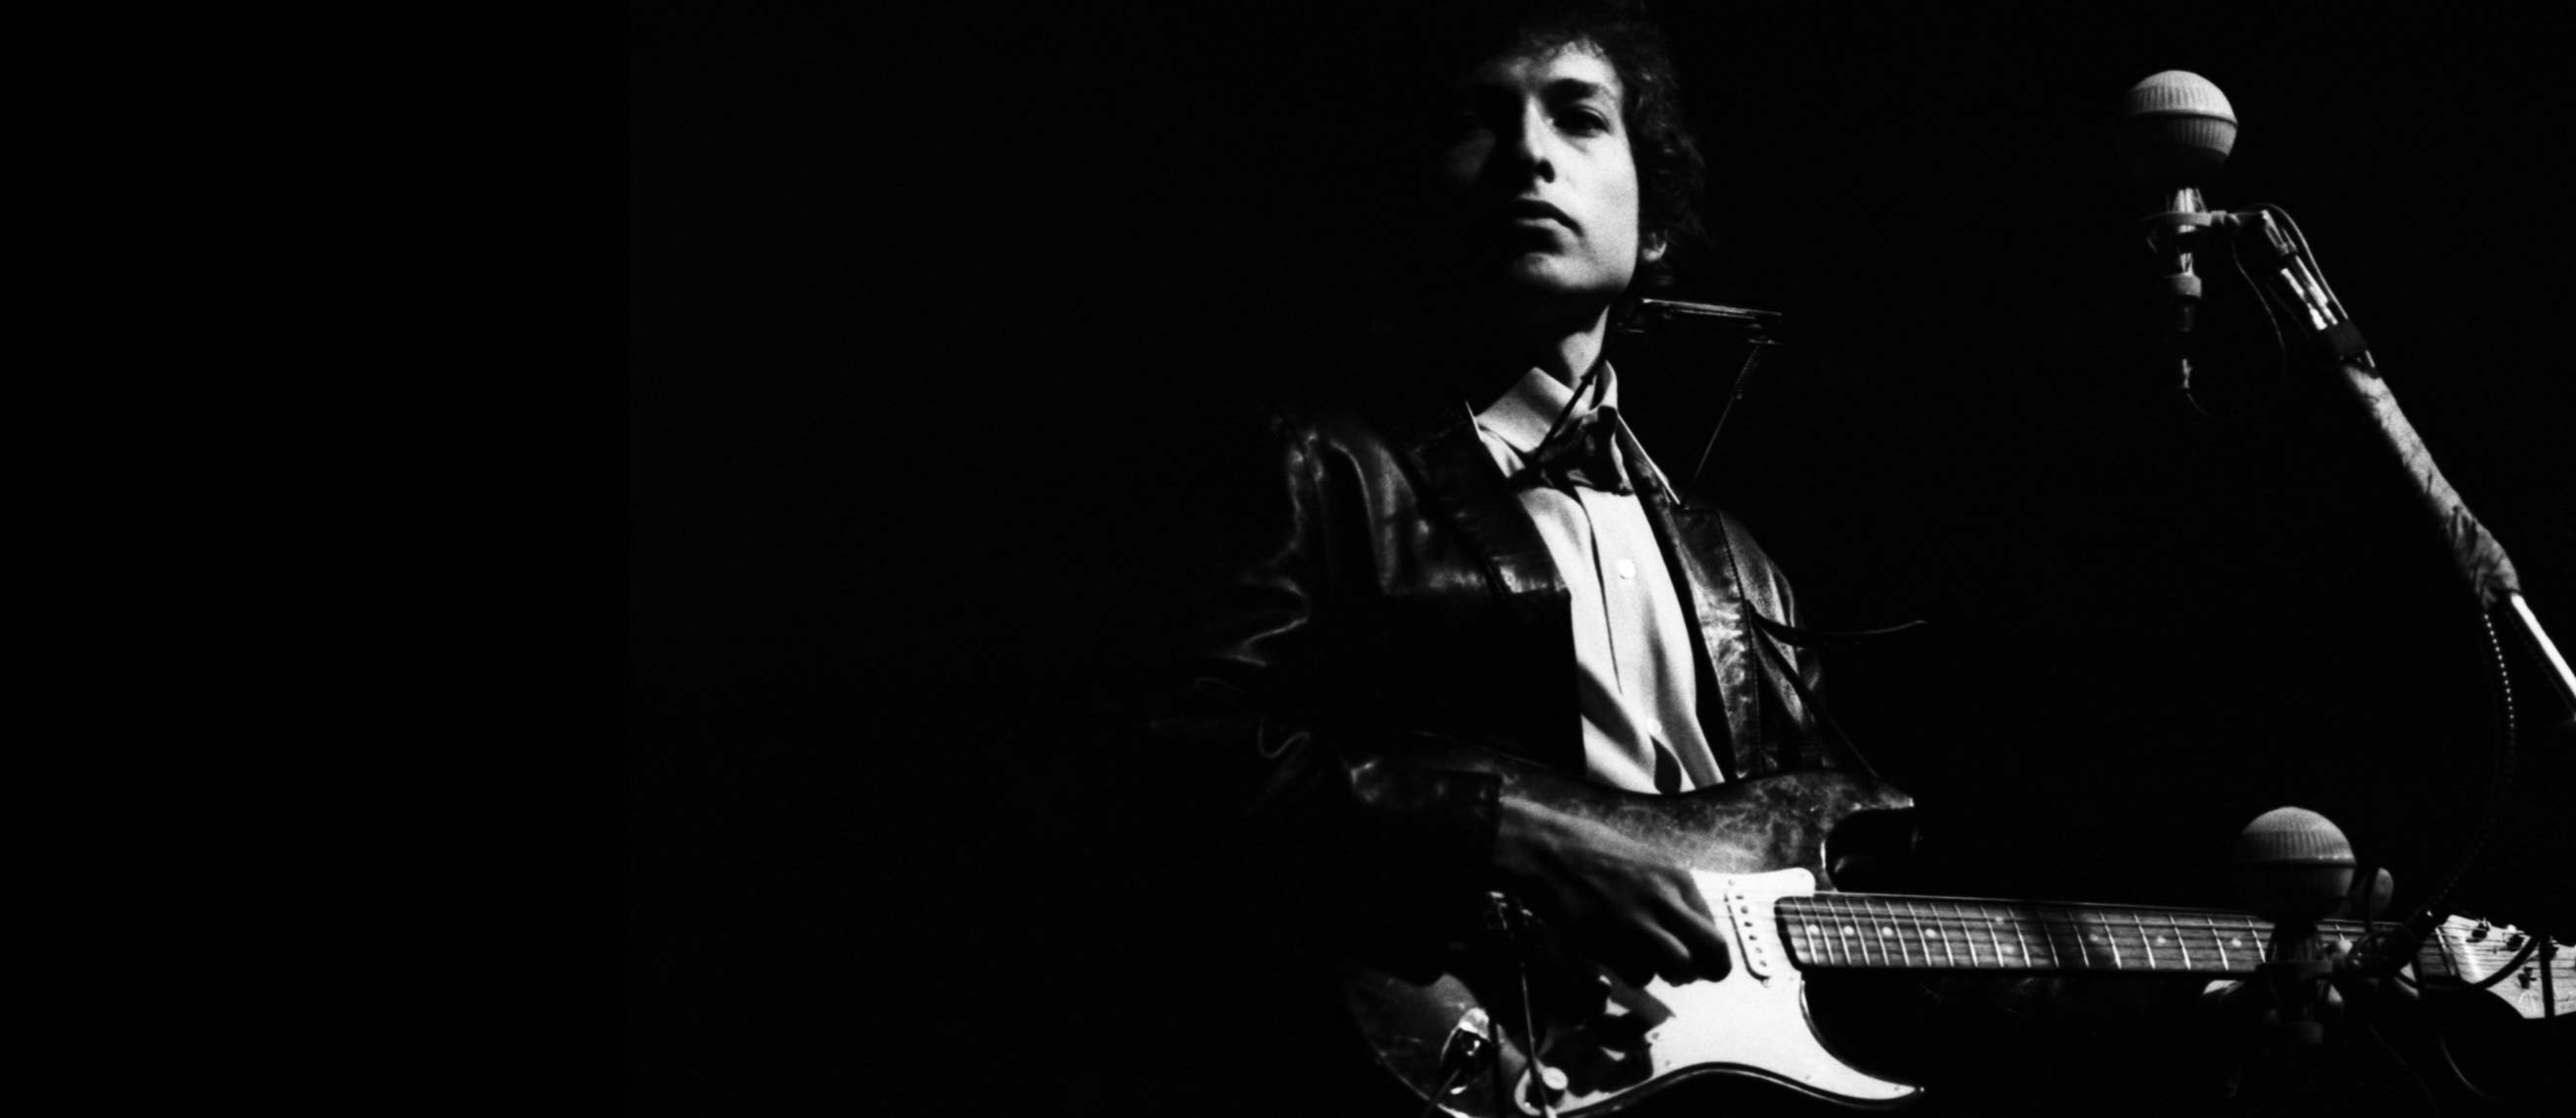 11 Greatest Stratocaster Moments